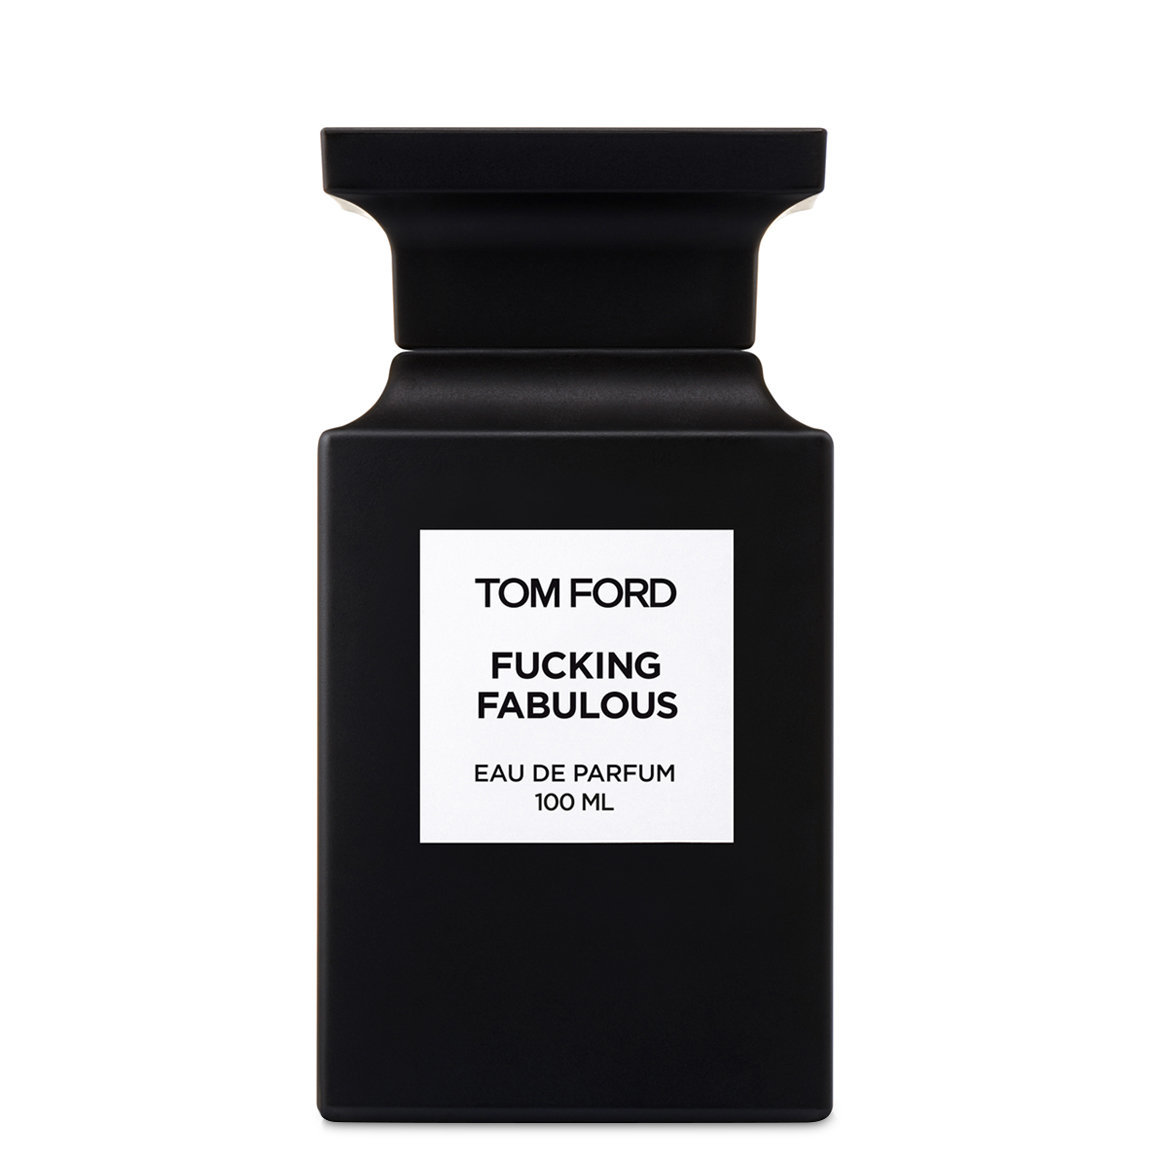 TOM FORD Fucking Fabulous 100 ml alternative view 1.